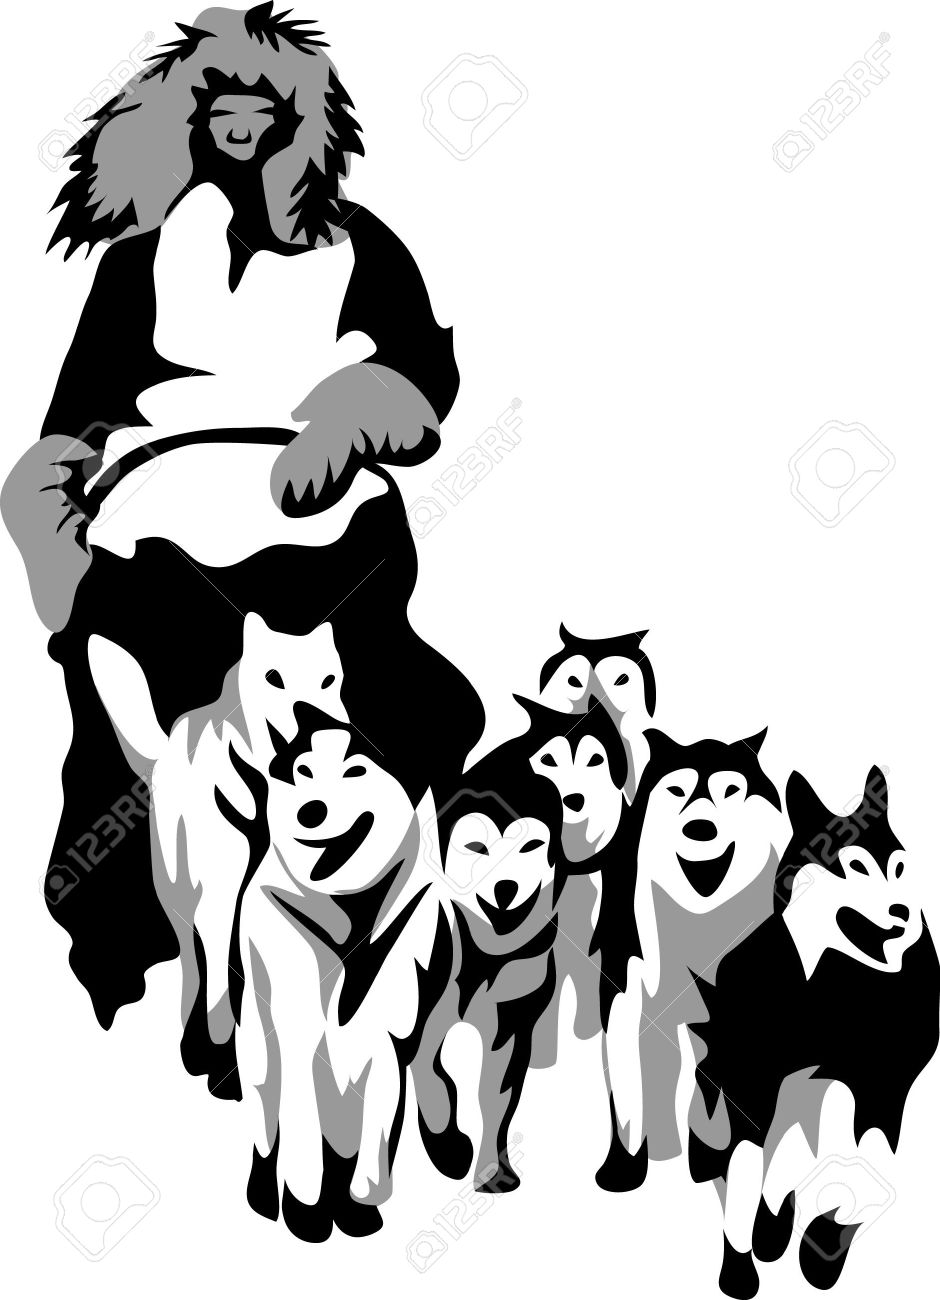 117 Dog Sledding Cliparts, Stock Vector And Royalty Free Dog.